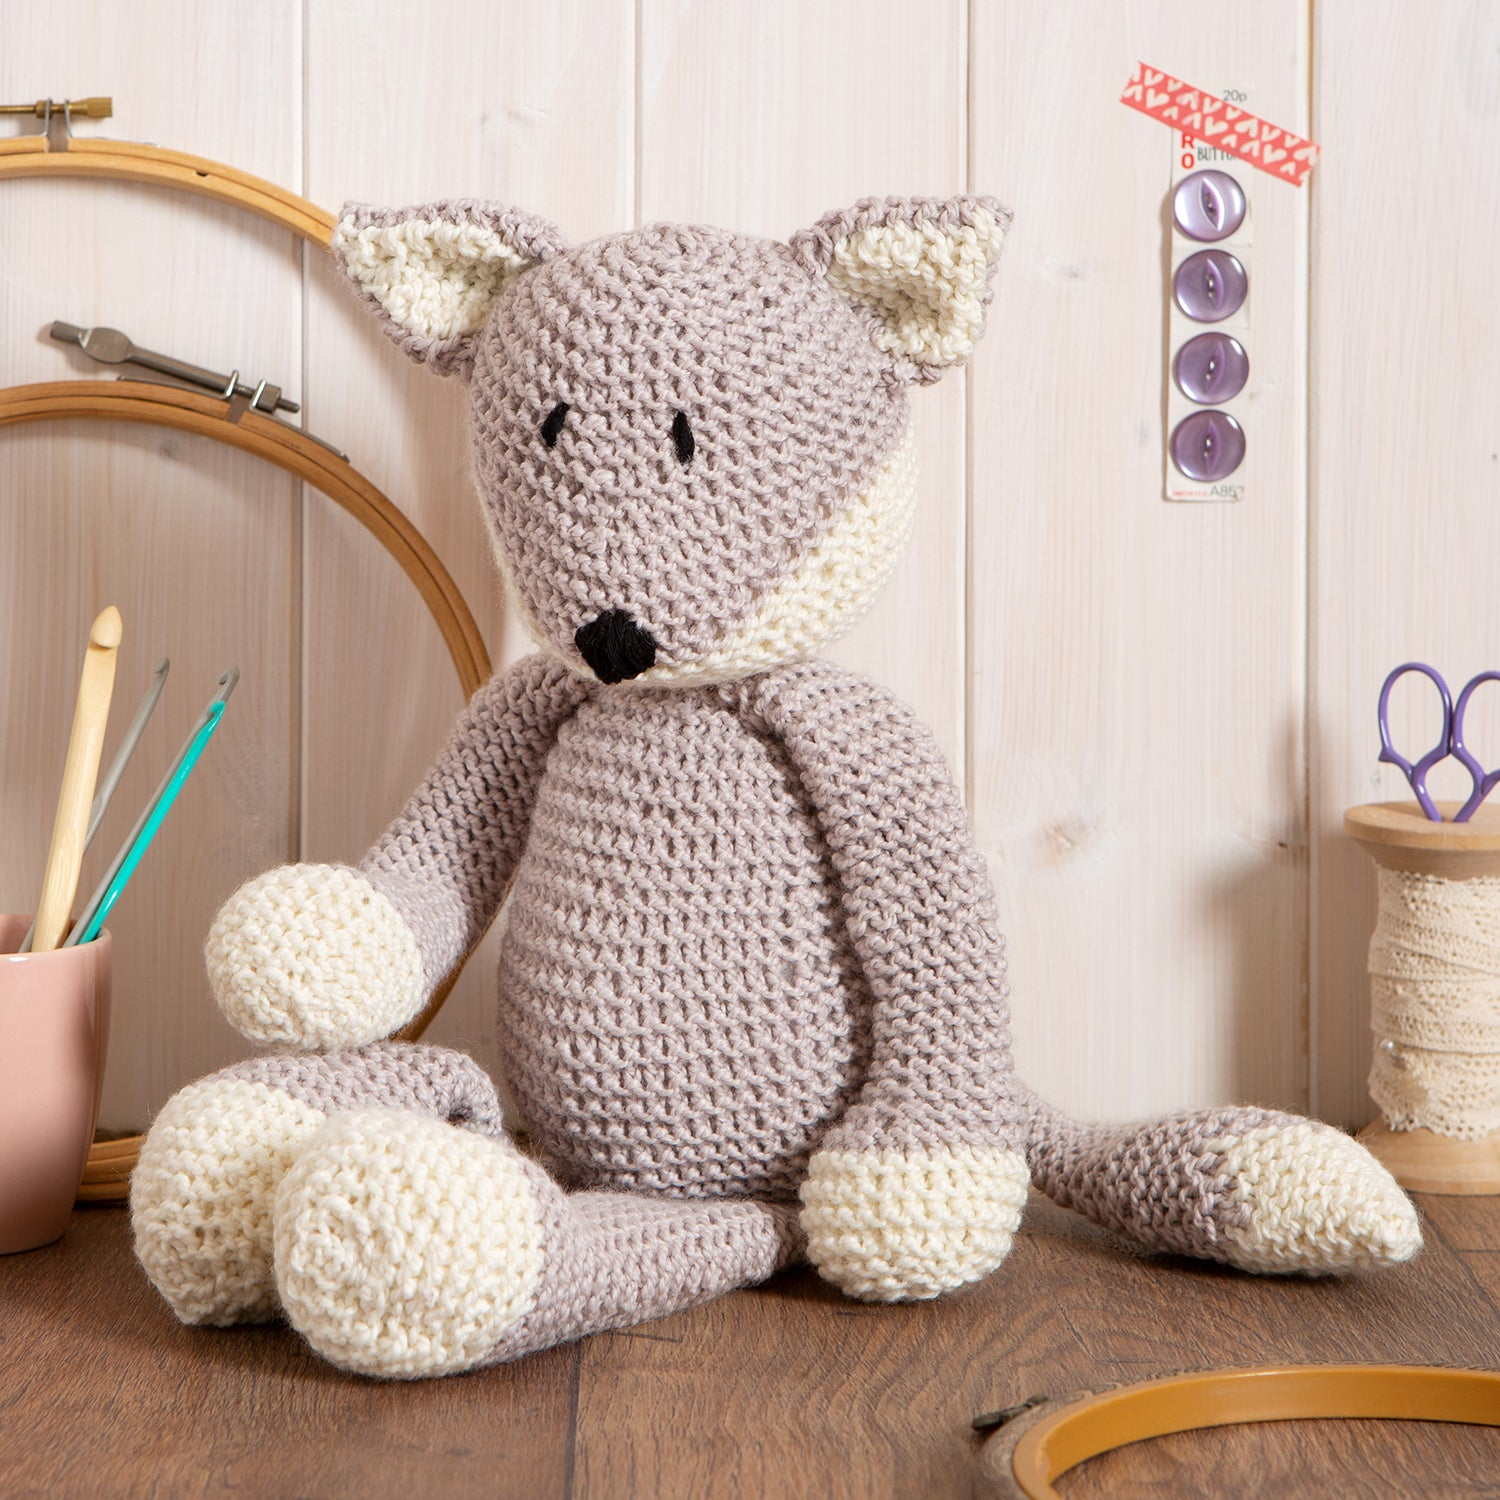 Wool Couture | Basil The Fox Knitting Kit | 2021 AAA Spring Show Kit